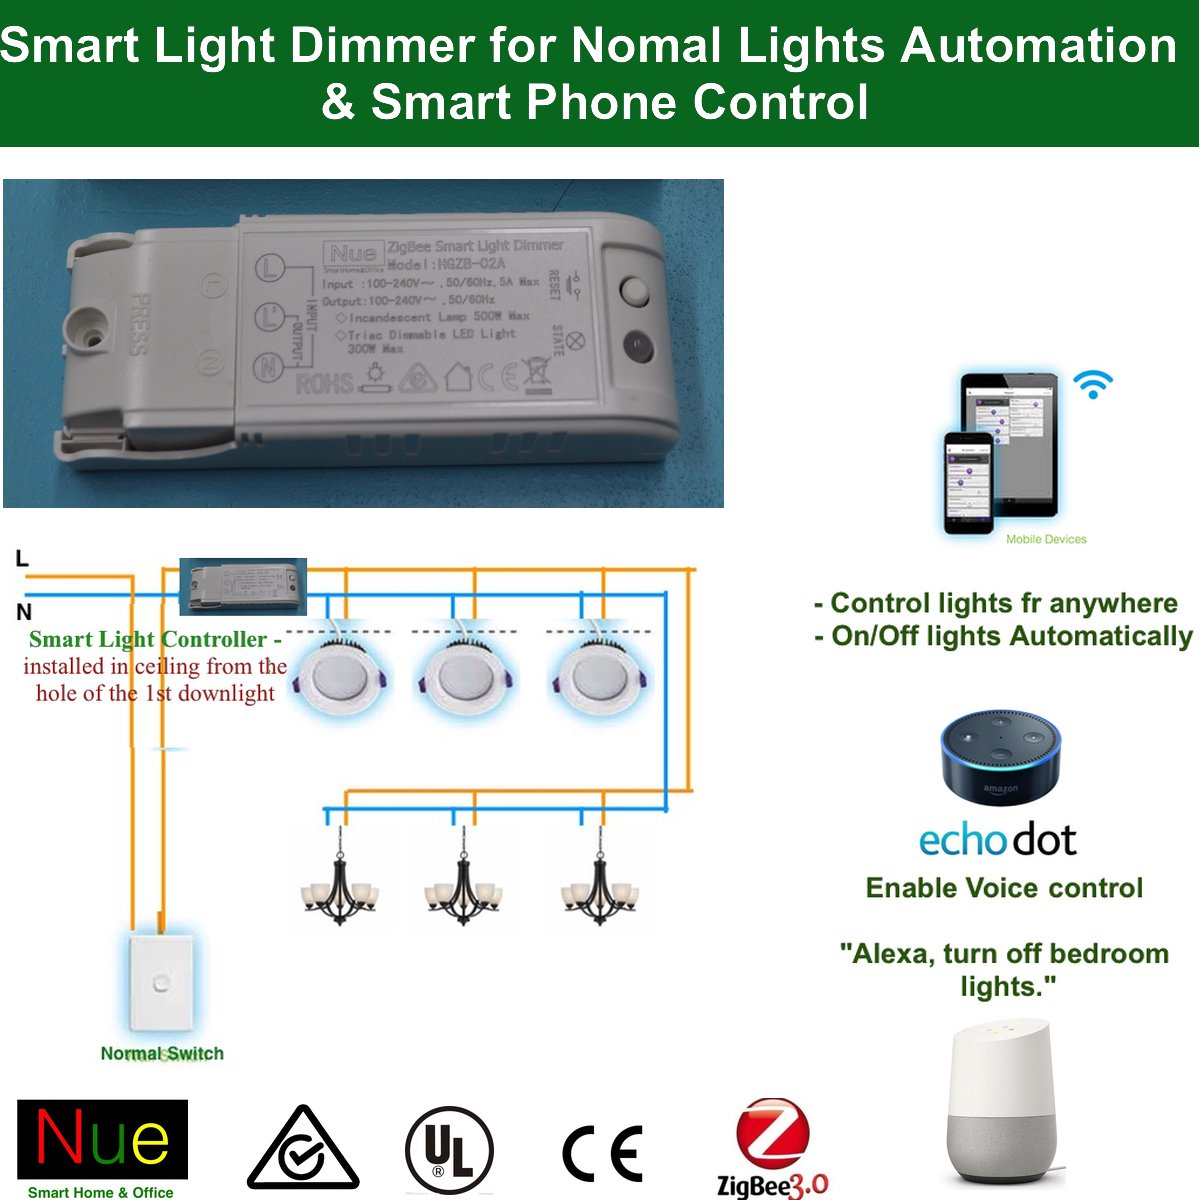 Au Nz Approved Smart Zigbee In Ceiling Light Dimmer For Upgrading Automatic Lamp Circuit Normal Lights And Switches To Wireless Home Automation Google Amazon Echo Dot